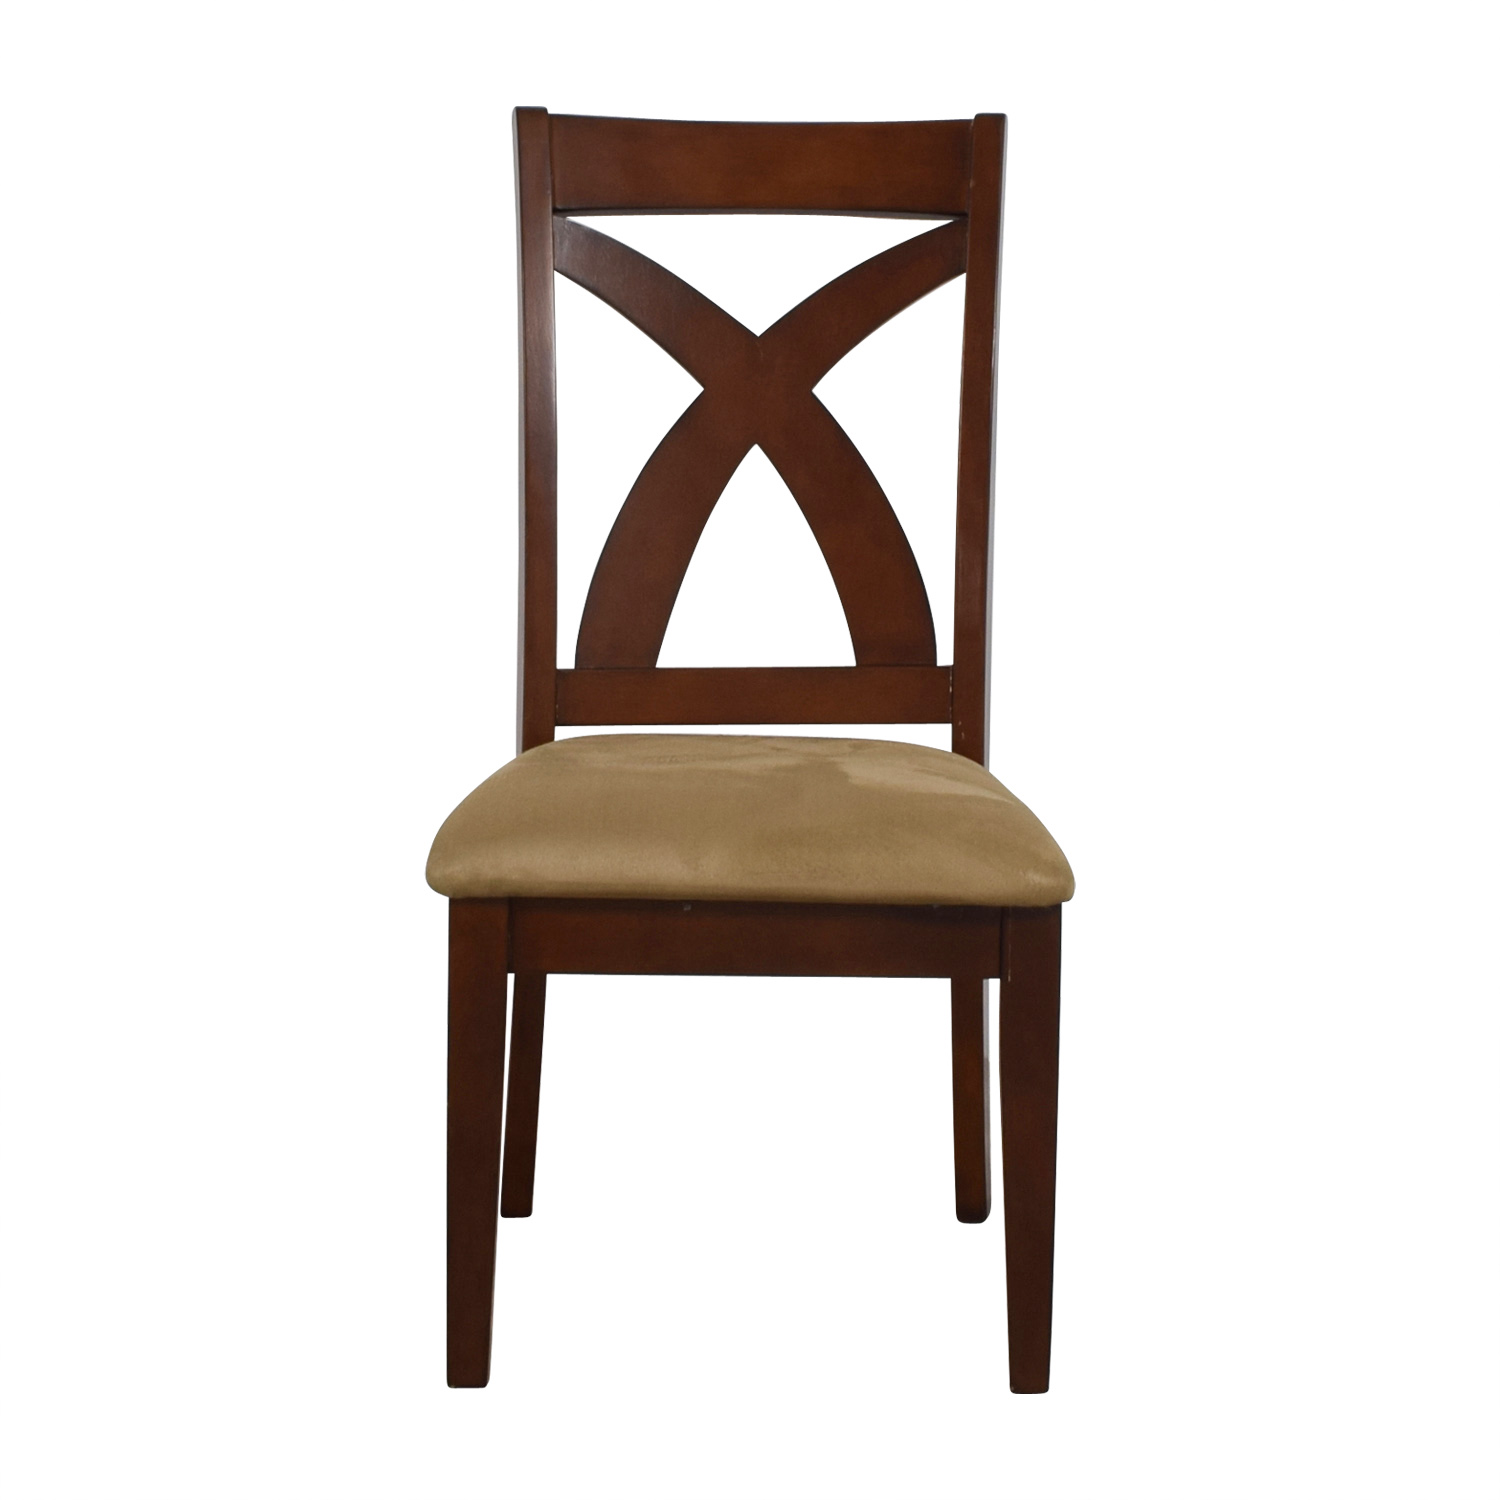 Solid Wood Chair with Cross Back & Padded Seat nj